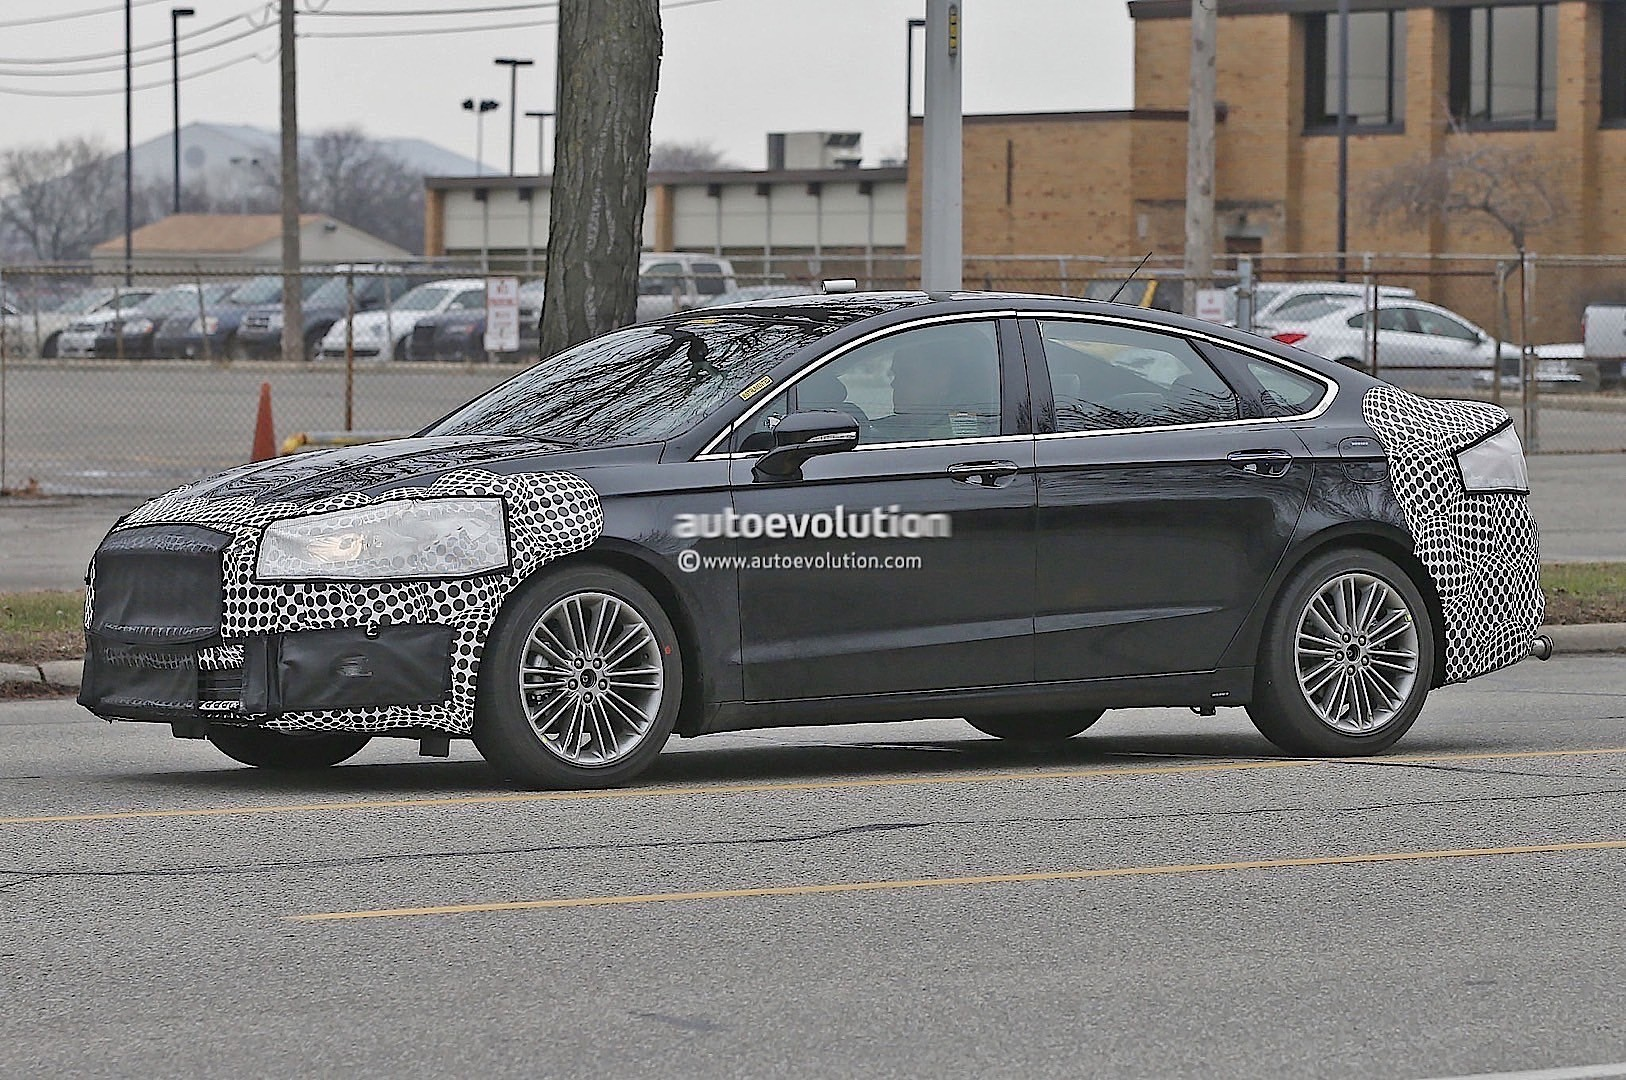 2017 ford fusion mondeo facelift spied during city testing new taillight graphics autoevolution. Black Bedroom Furniture Sets. Home Design Ideas